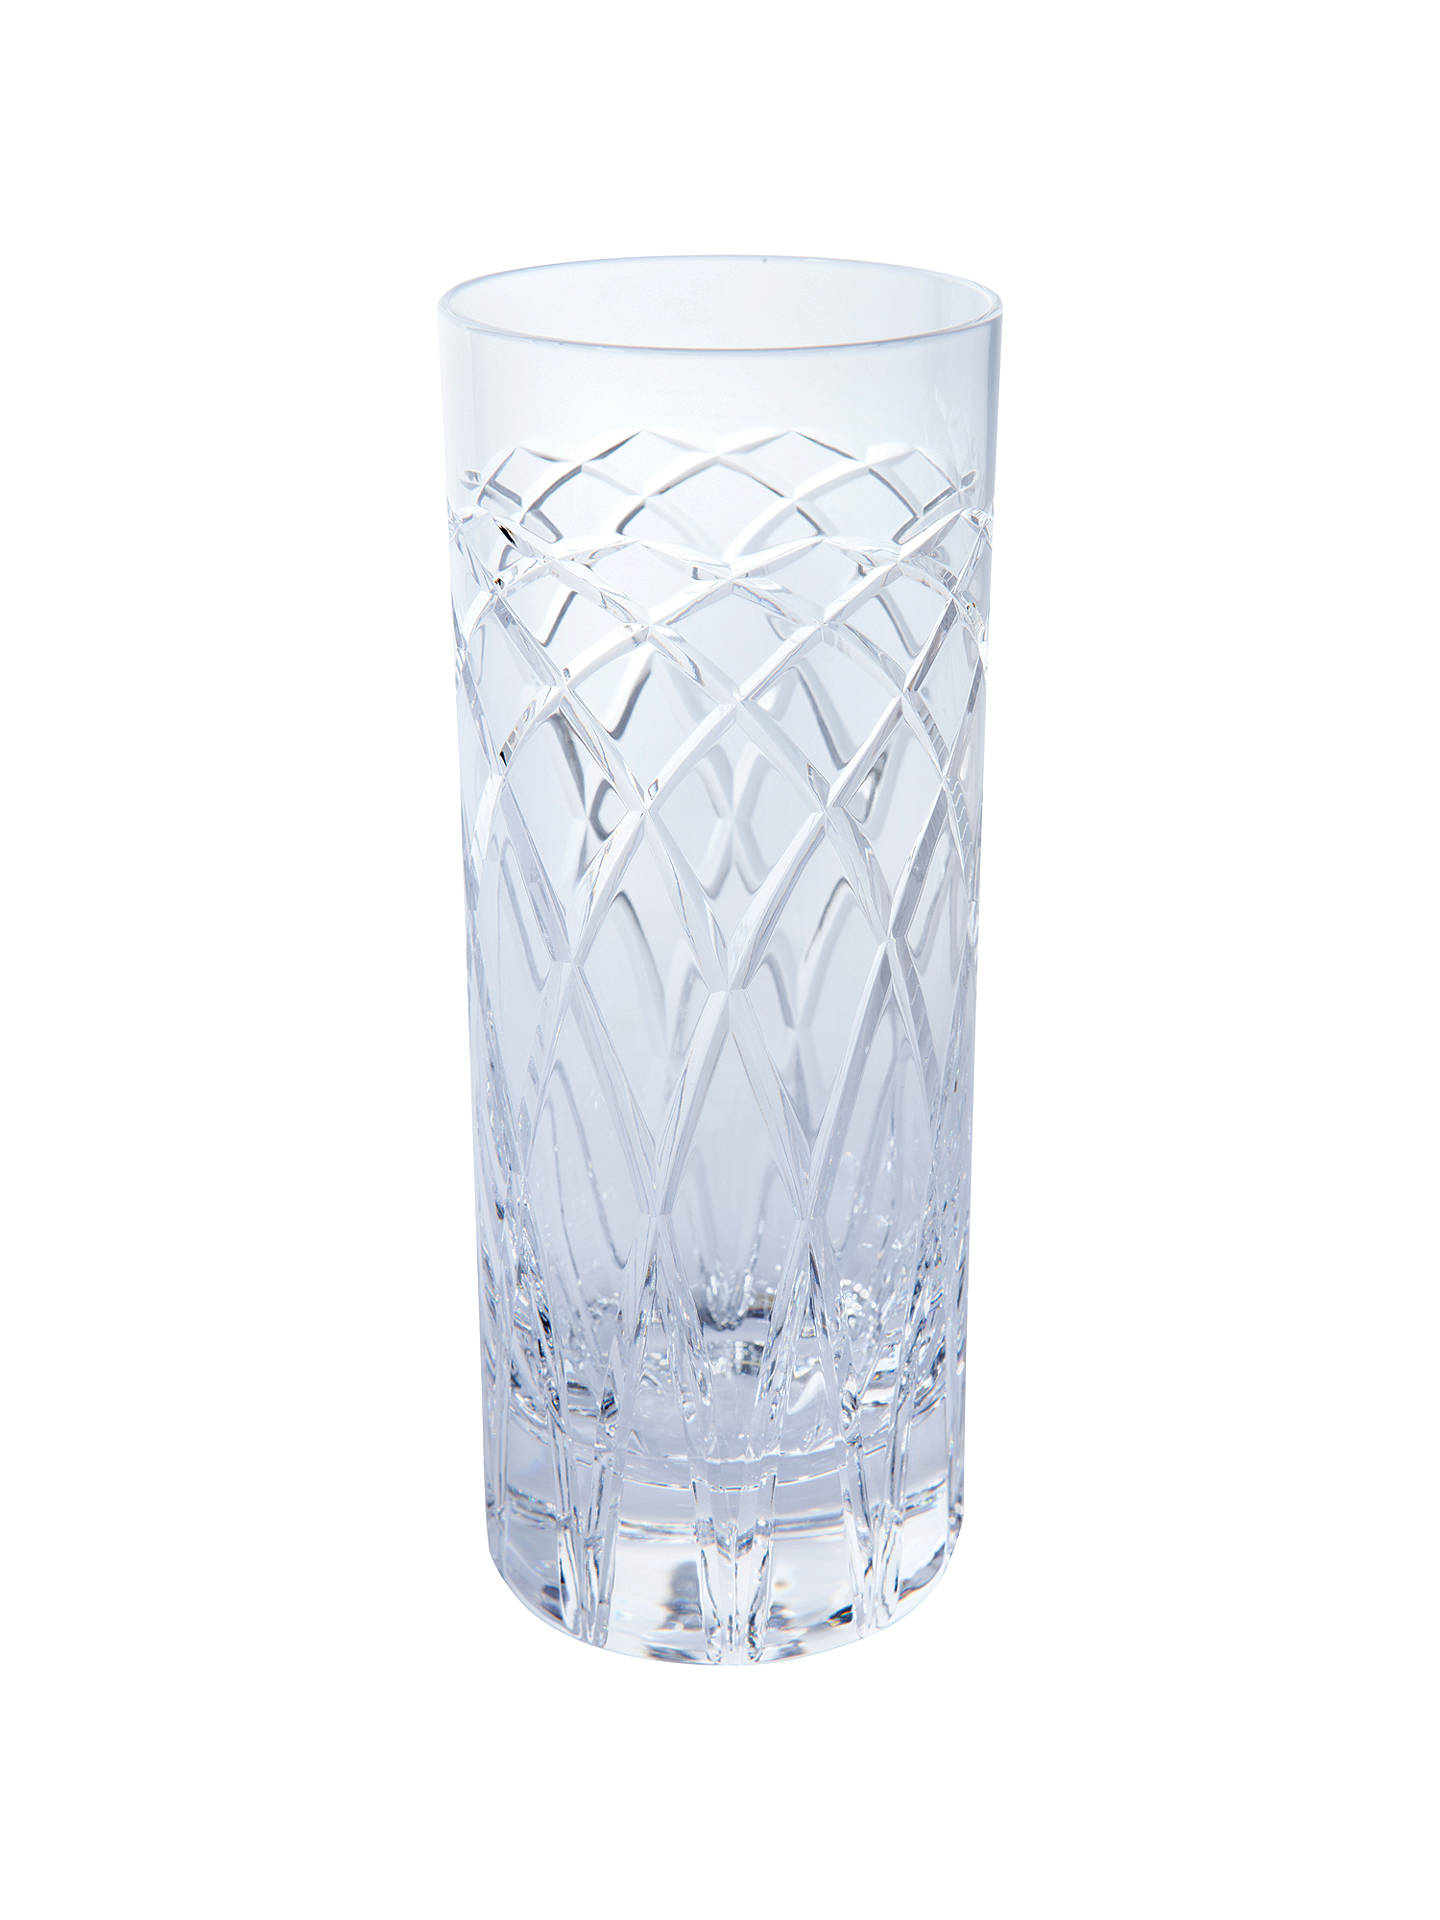 BuyRoyal Brierley Harris Crystal Highballs, Set of 2, Clear Online at johnlewis.com